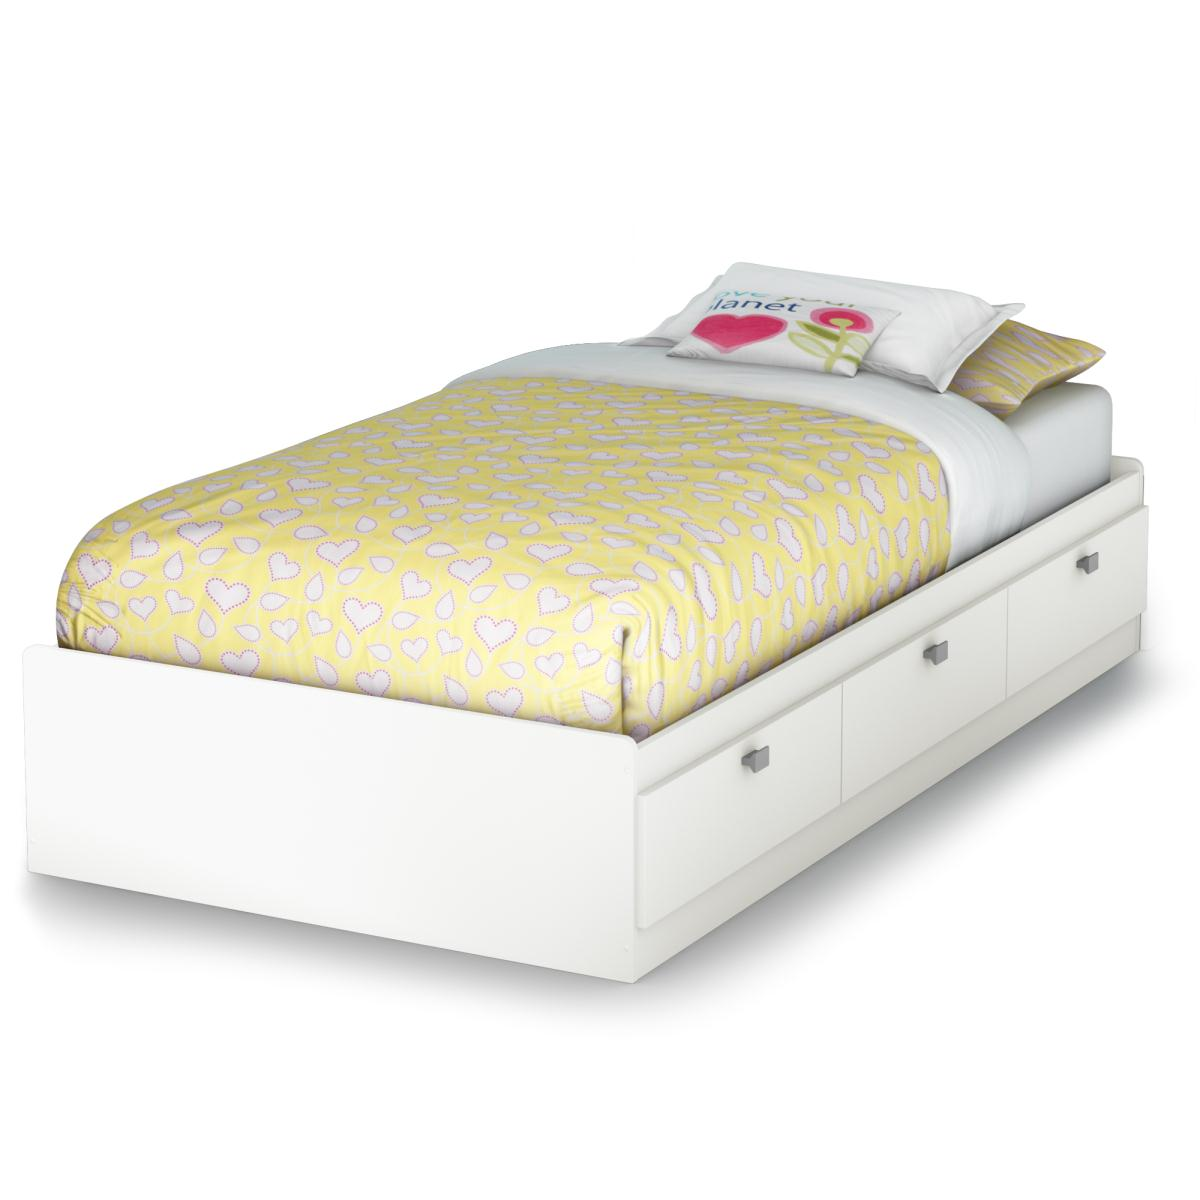 South Shore Sparkling Twin Mates Bed - Pure White